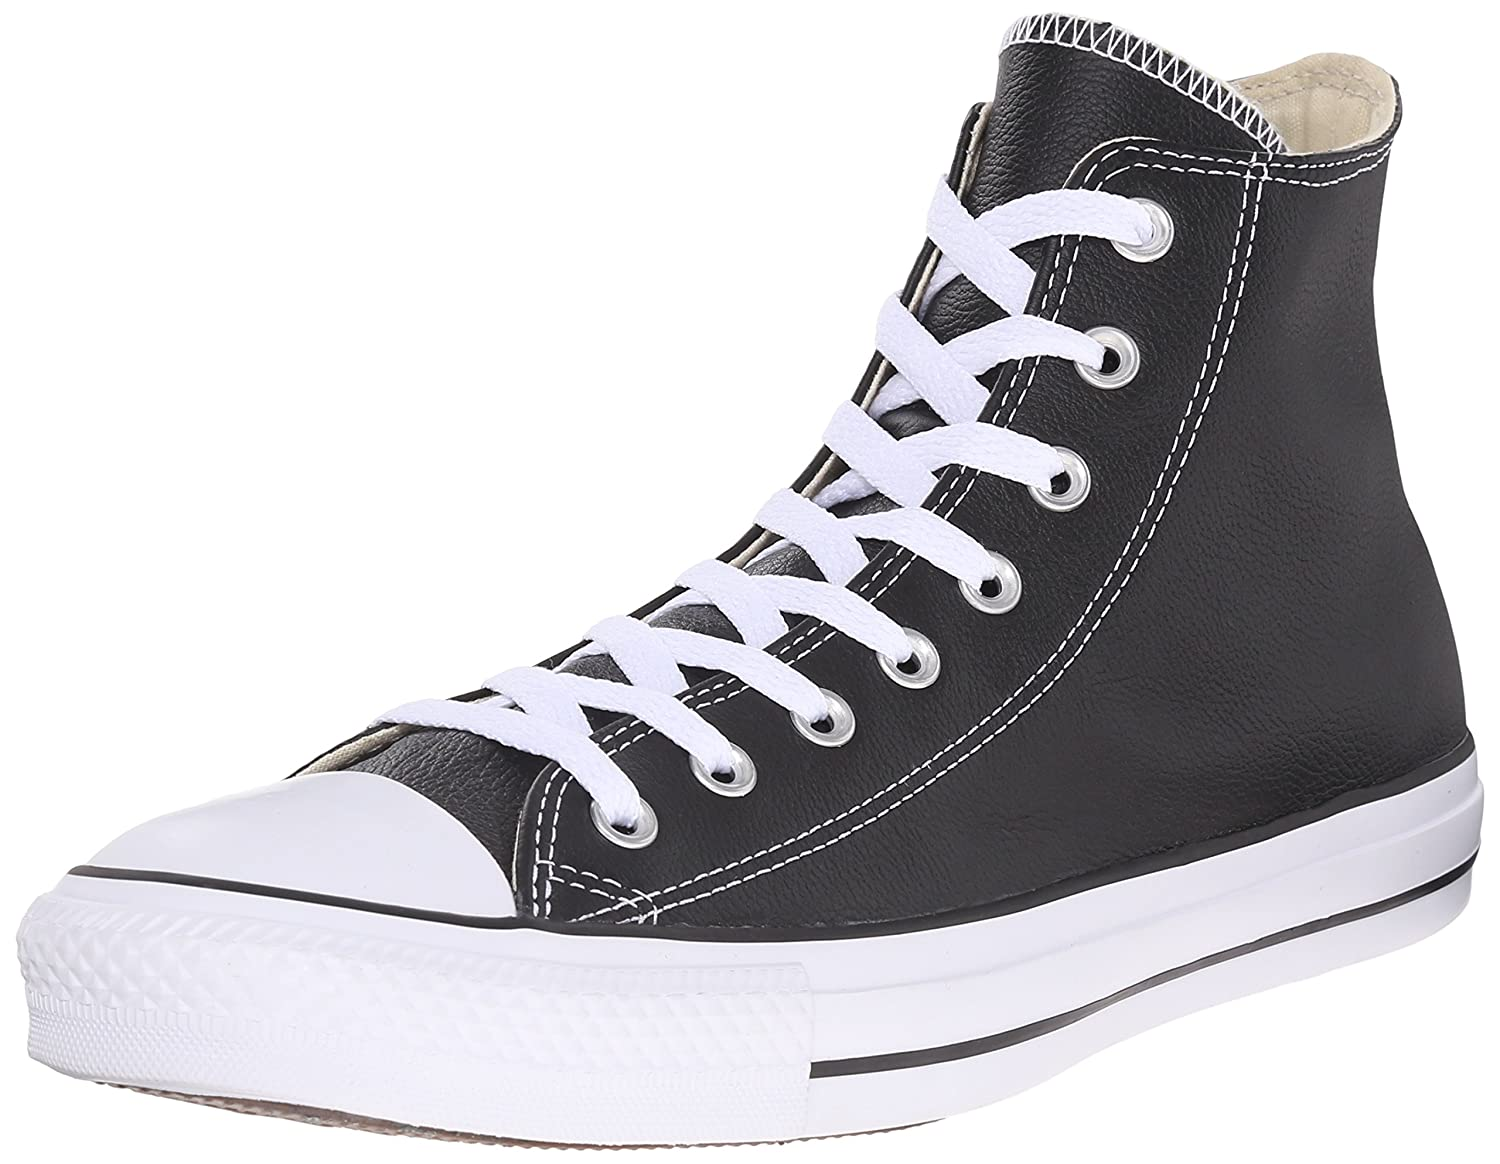 Converse Chuck Taylor All Star Leather High Top Sneaker B007PBF46W 11 M US|Black